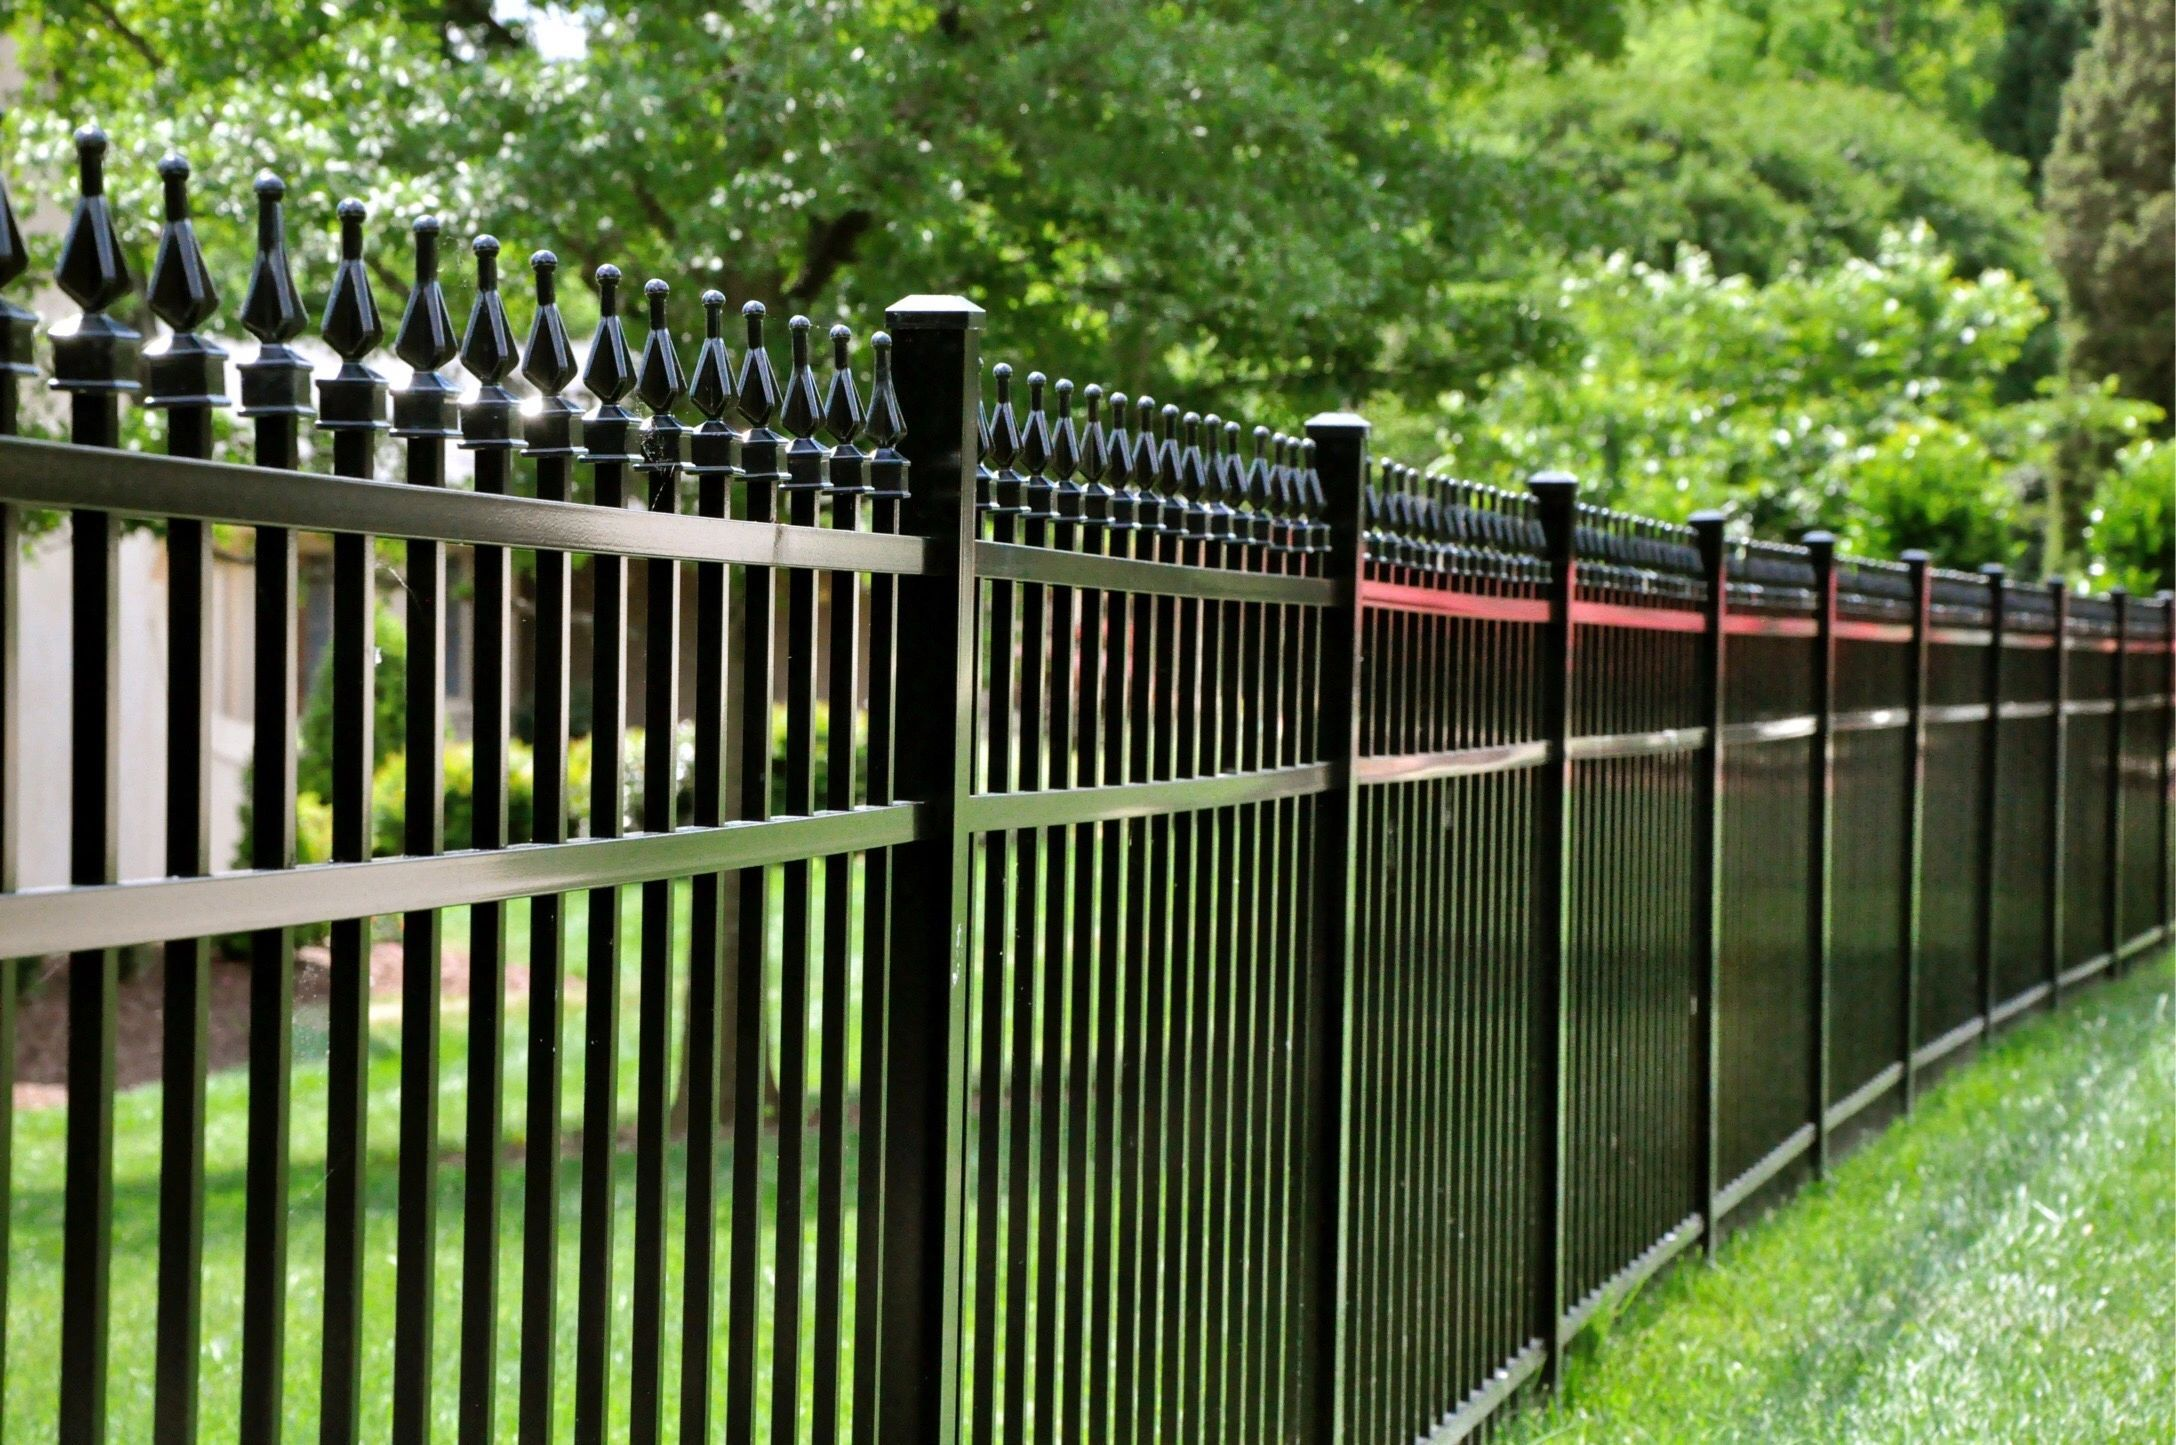 Aluminum Vinyl Wood Chain Link Driveway Gates Privacy Picket Rail Gate Operators Residential Commercial In Aluminum Fence Fence Builders Fence Design